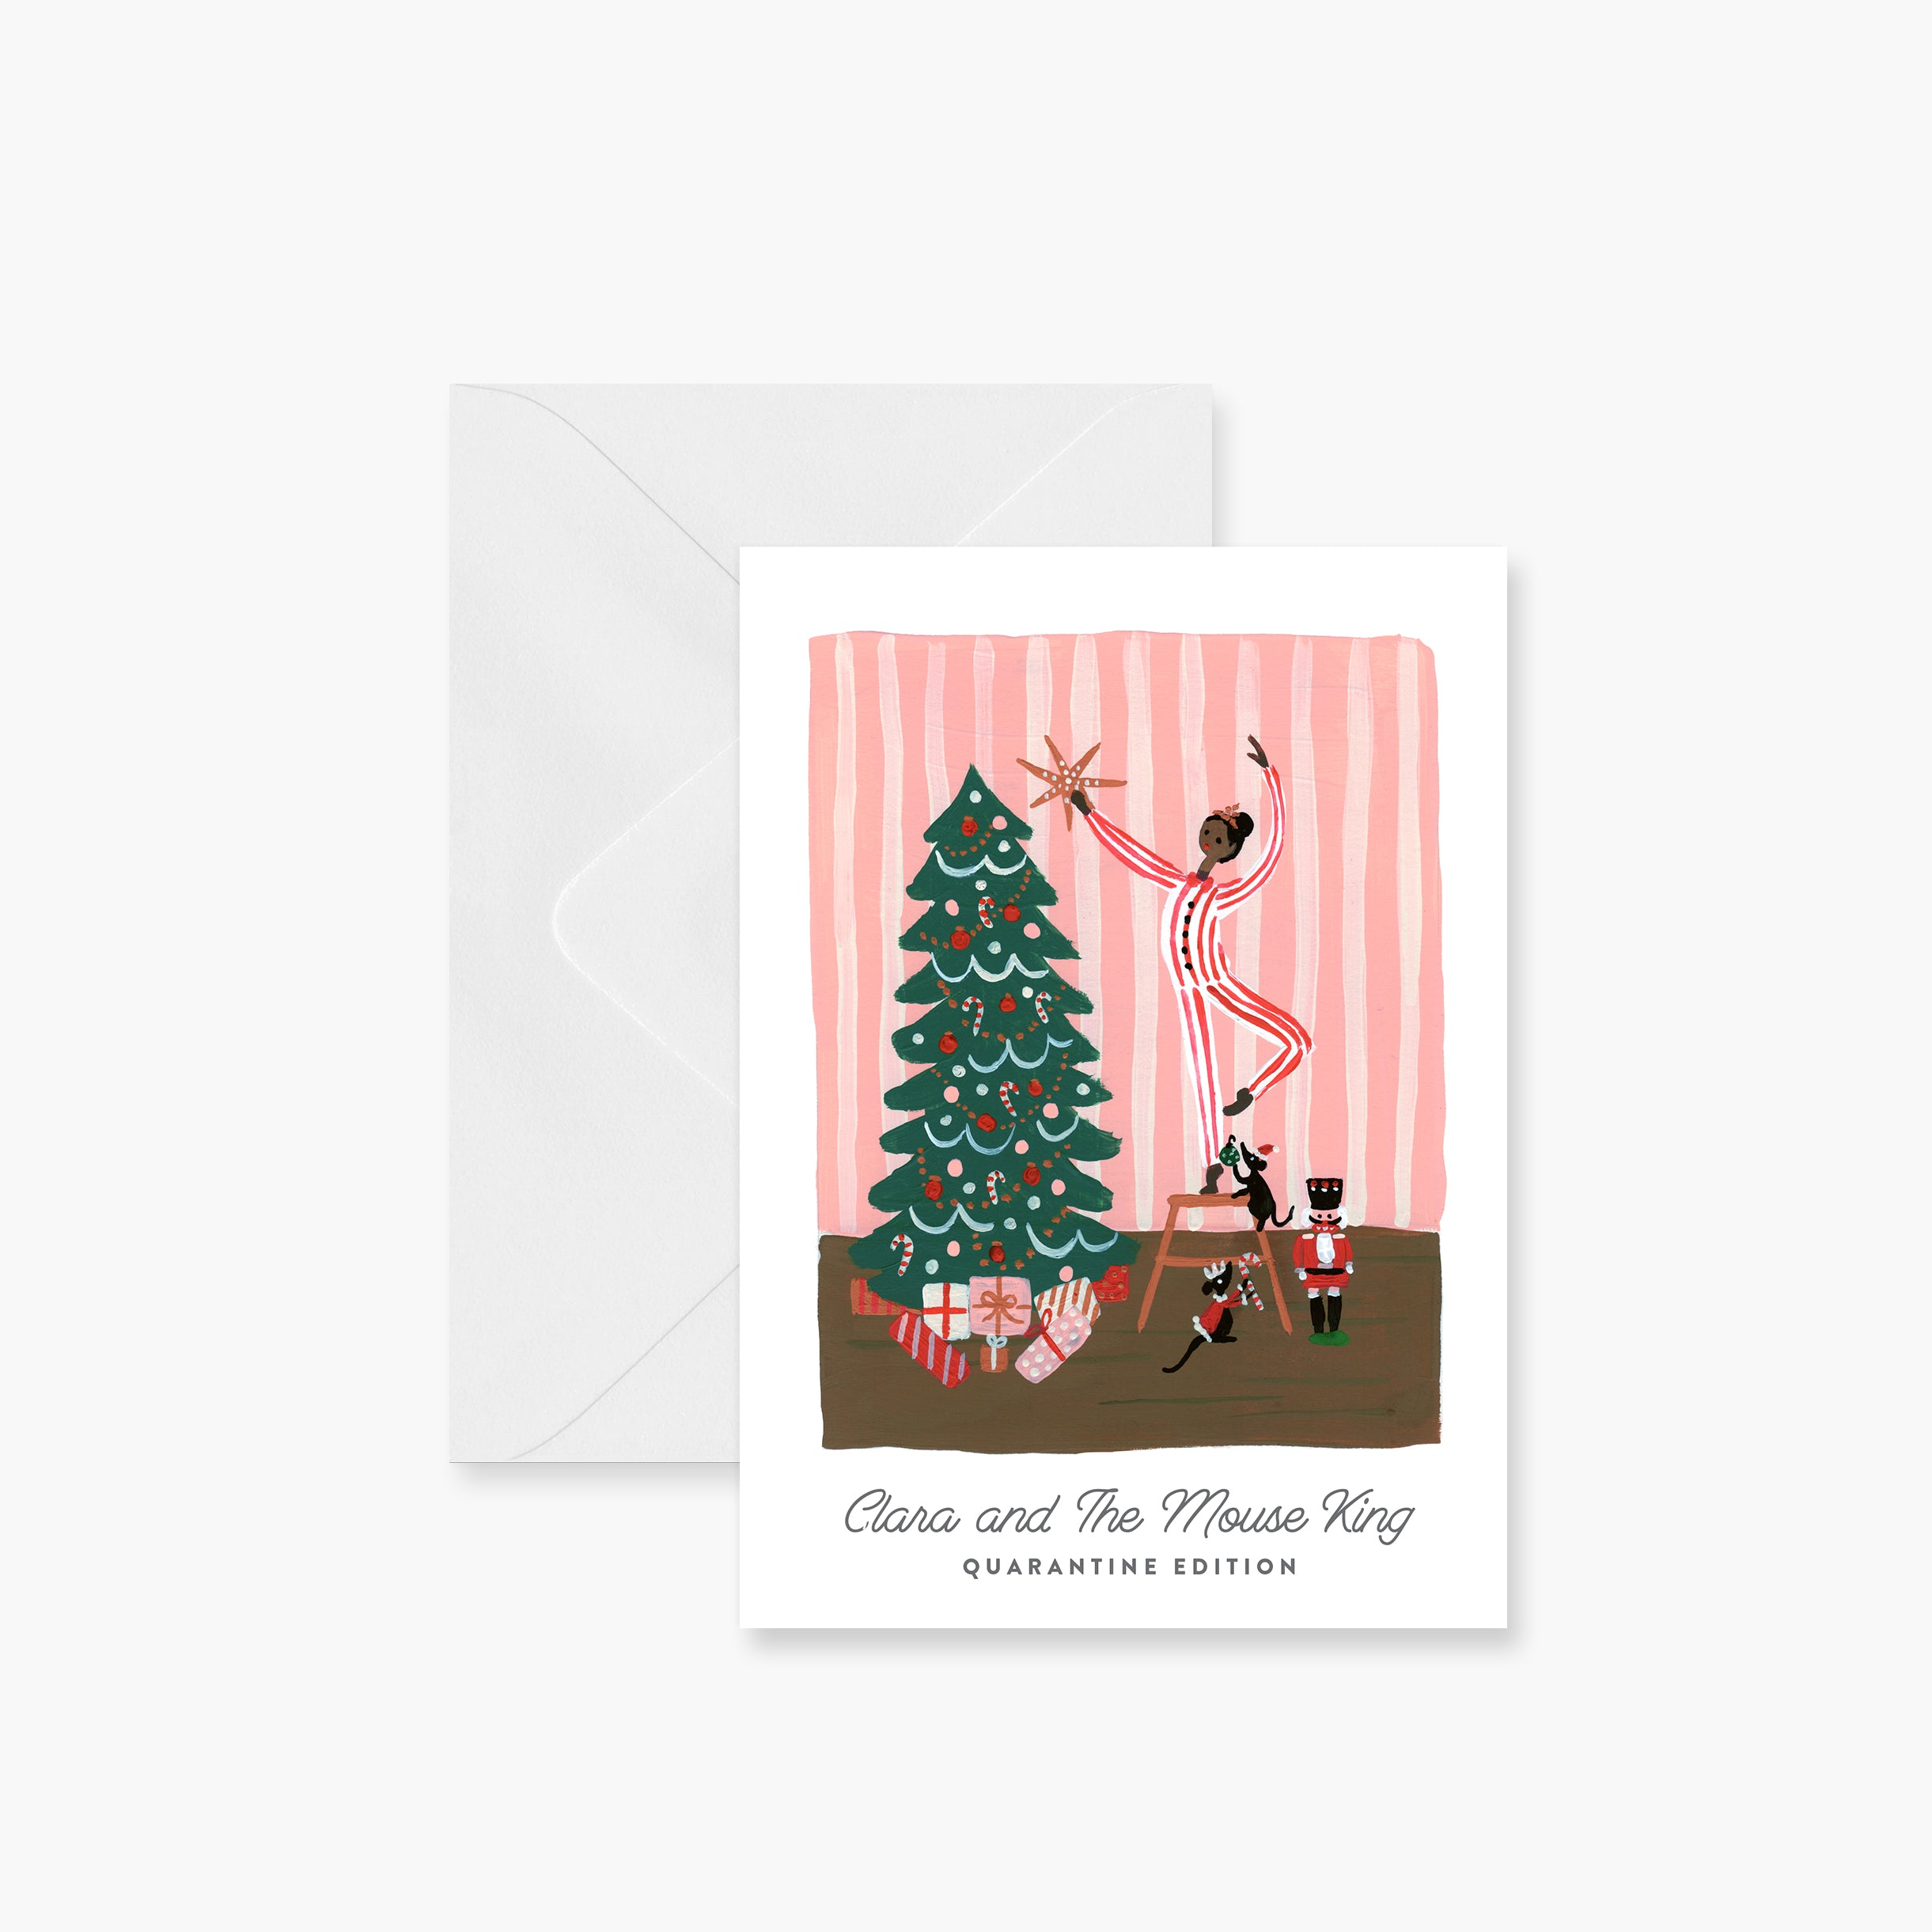 Clara and the Mouse King Holiday Card